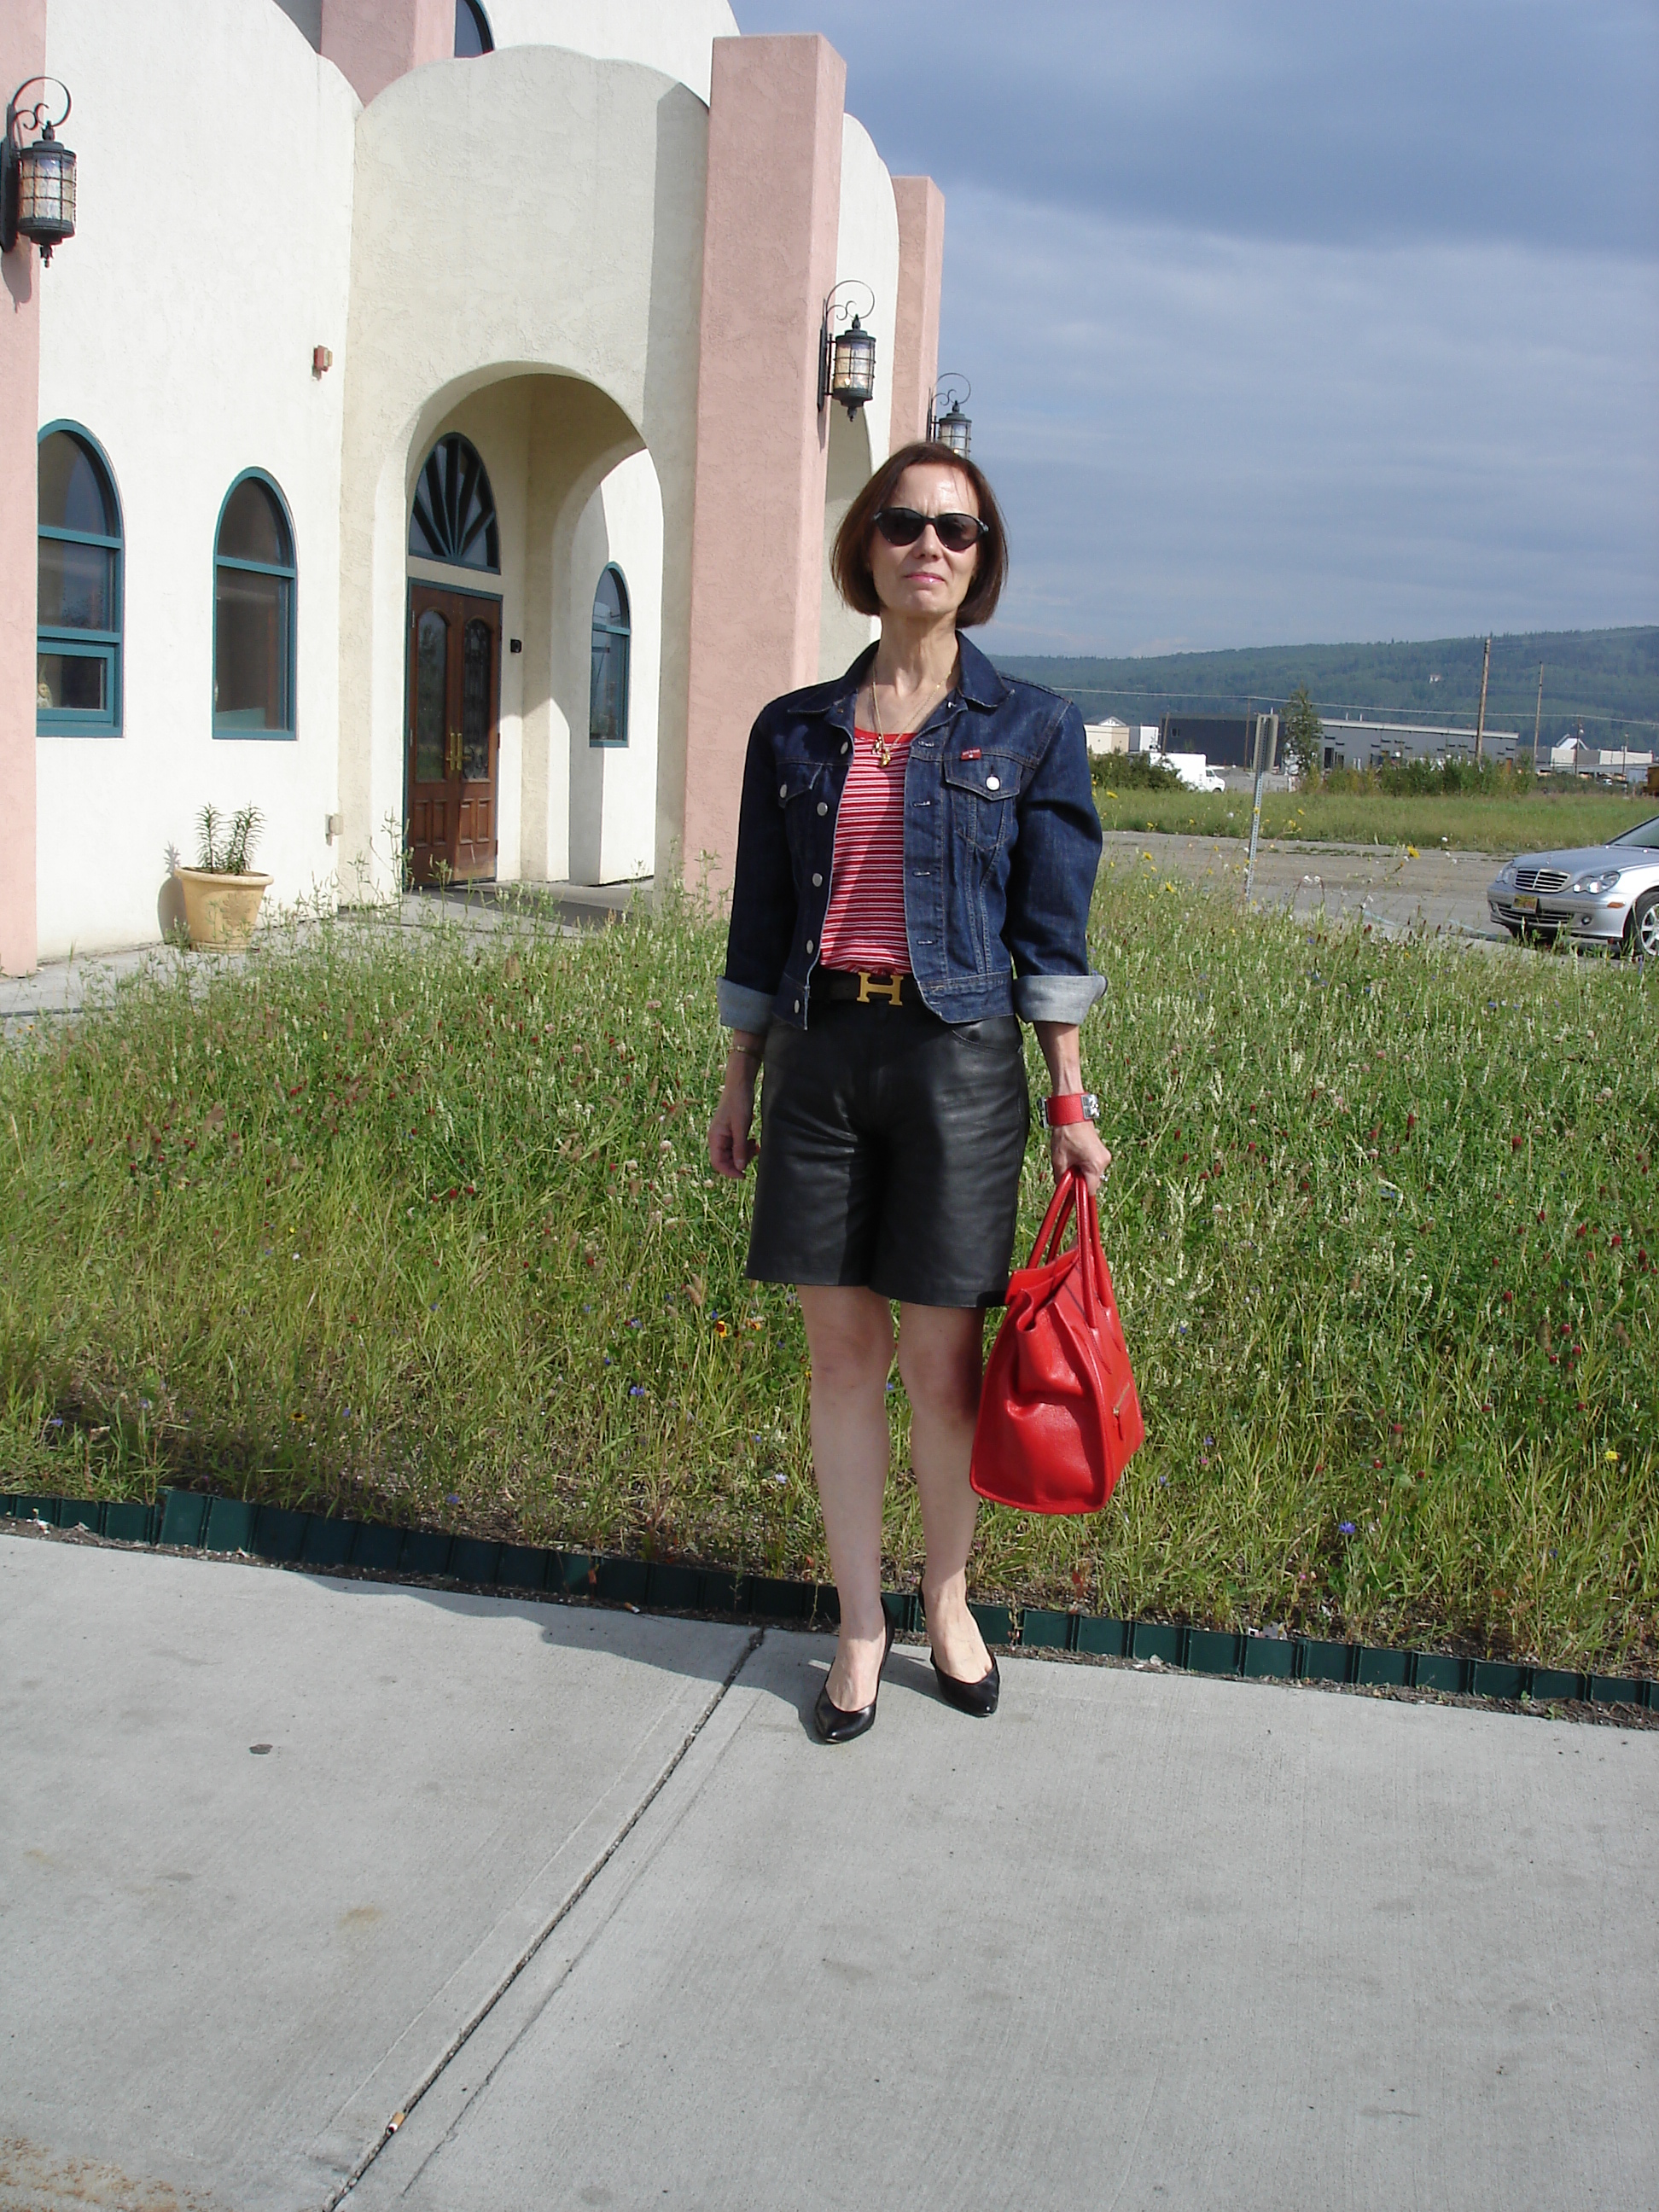 #over40fashion #over50fashion red, white, blue and black outfit | High Latitude Style | http://www.highlatitudestyle.com